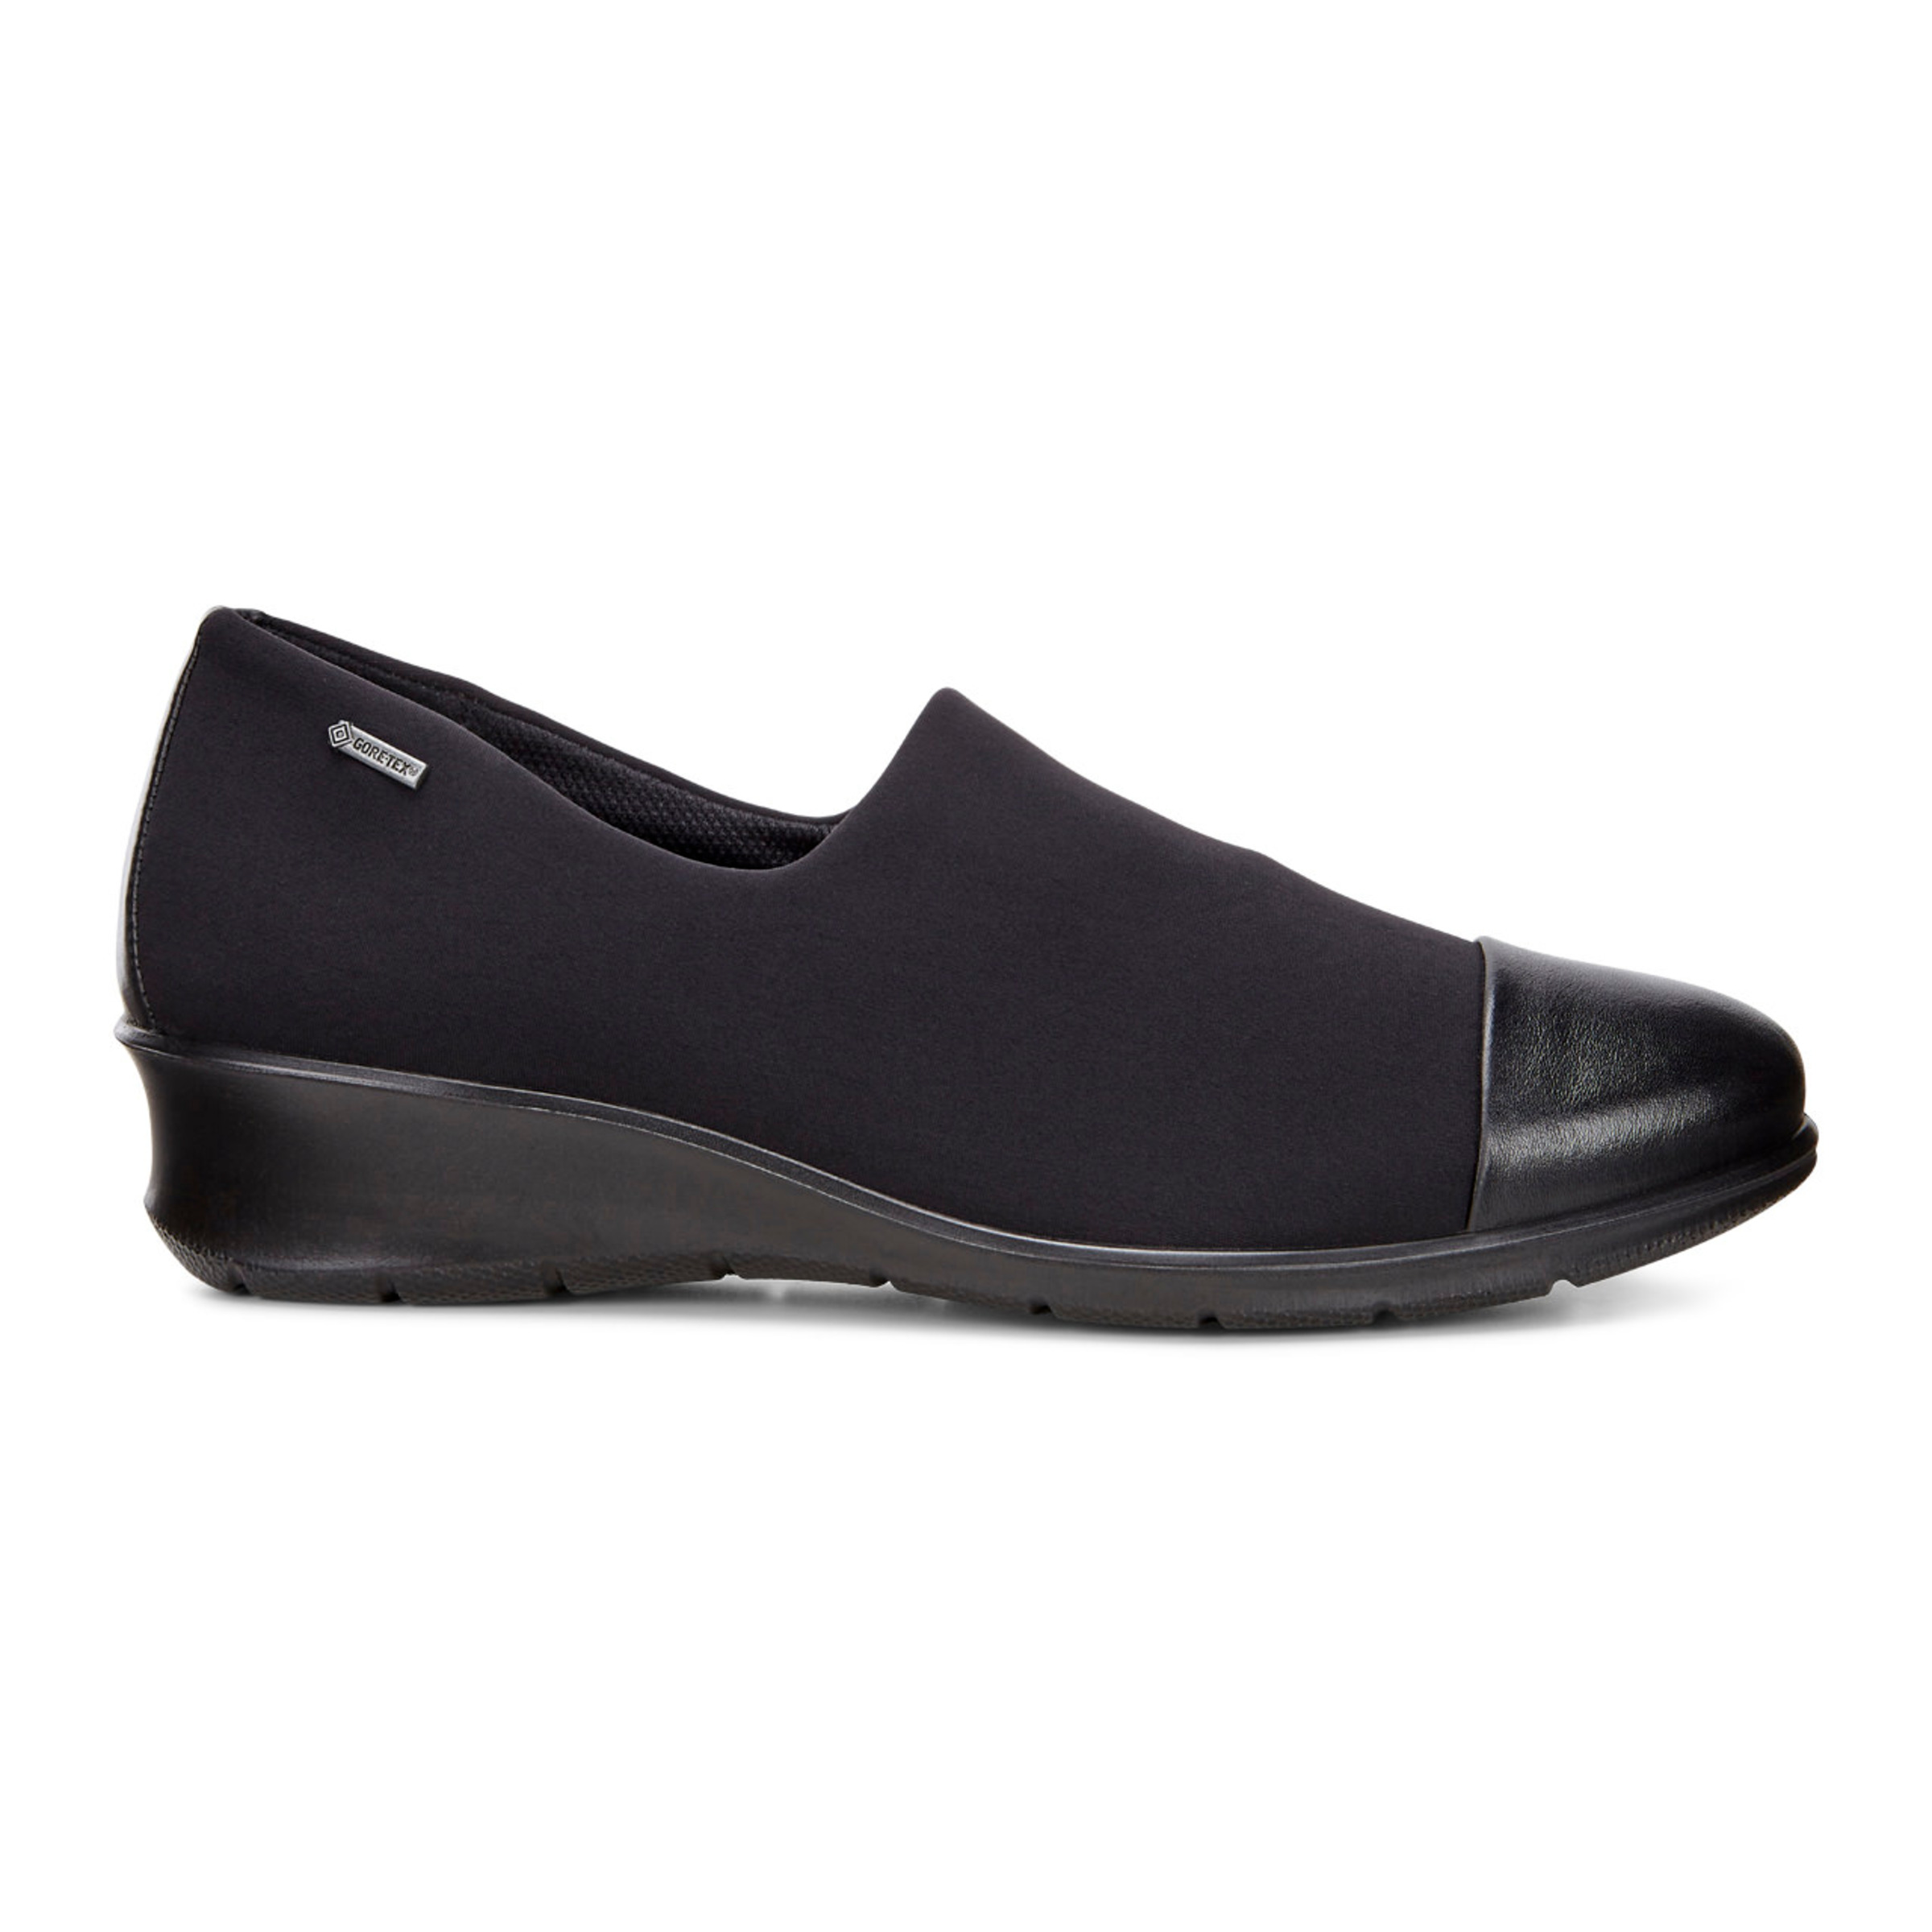 Image of ECCO Felicia Gtx Slip On